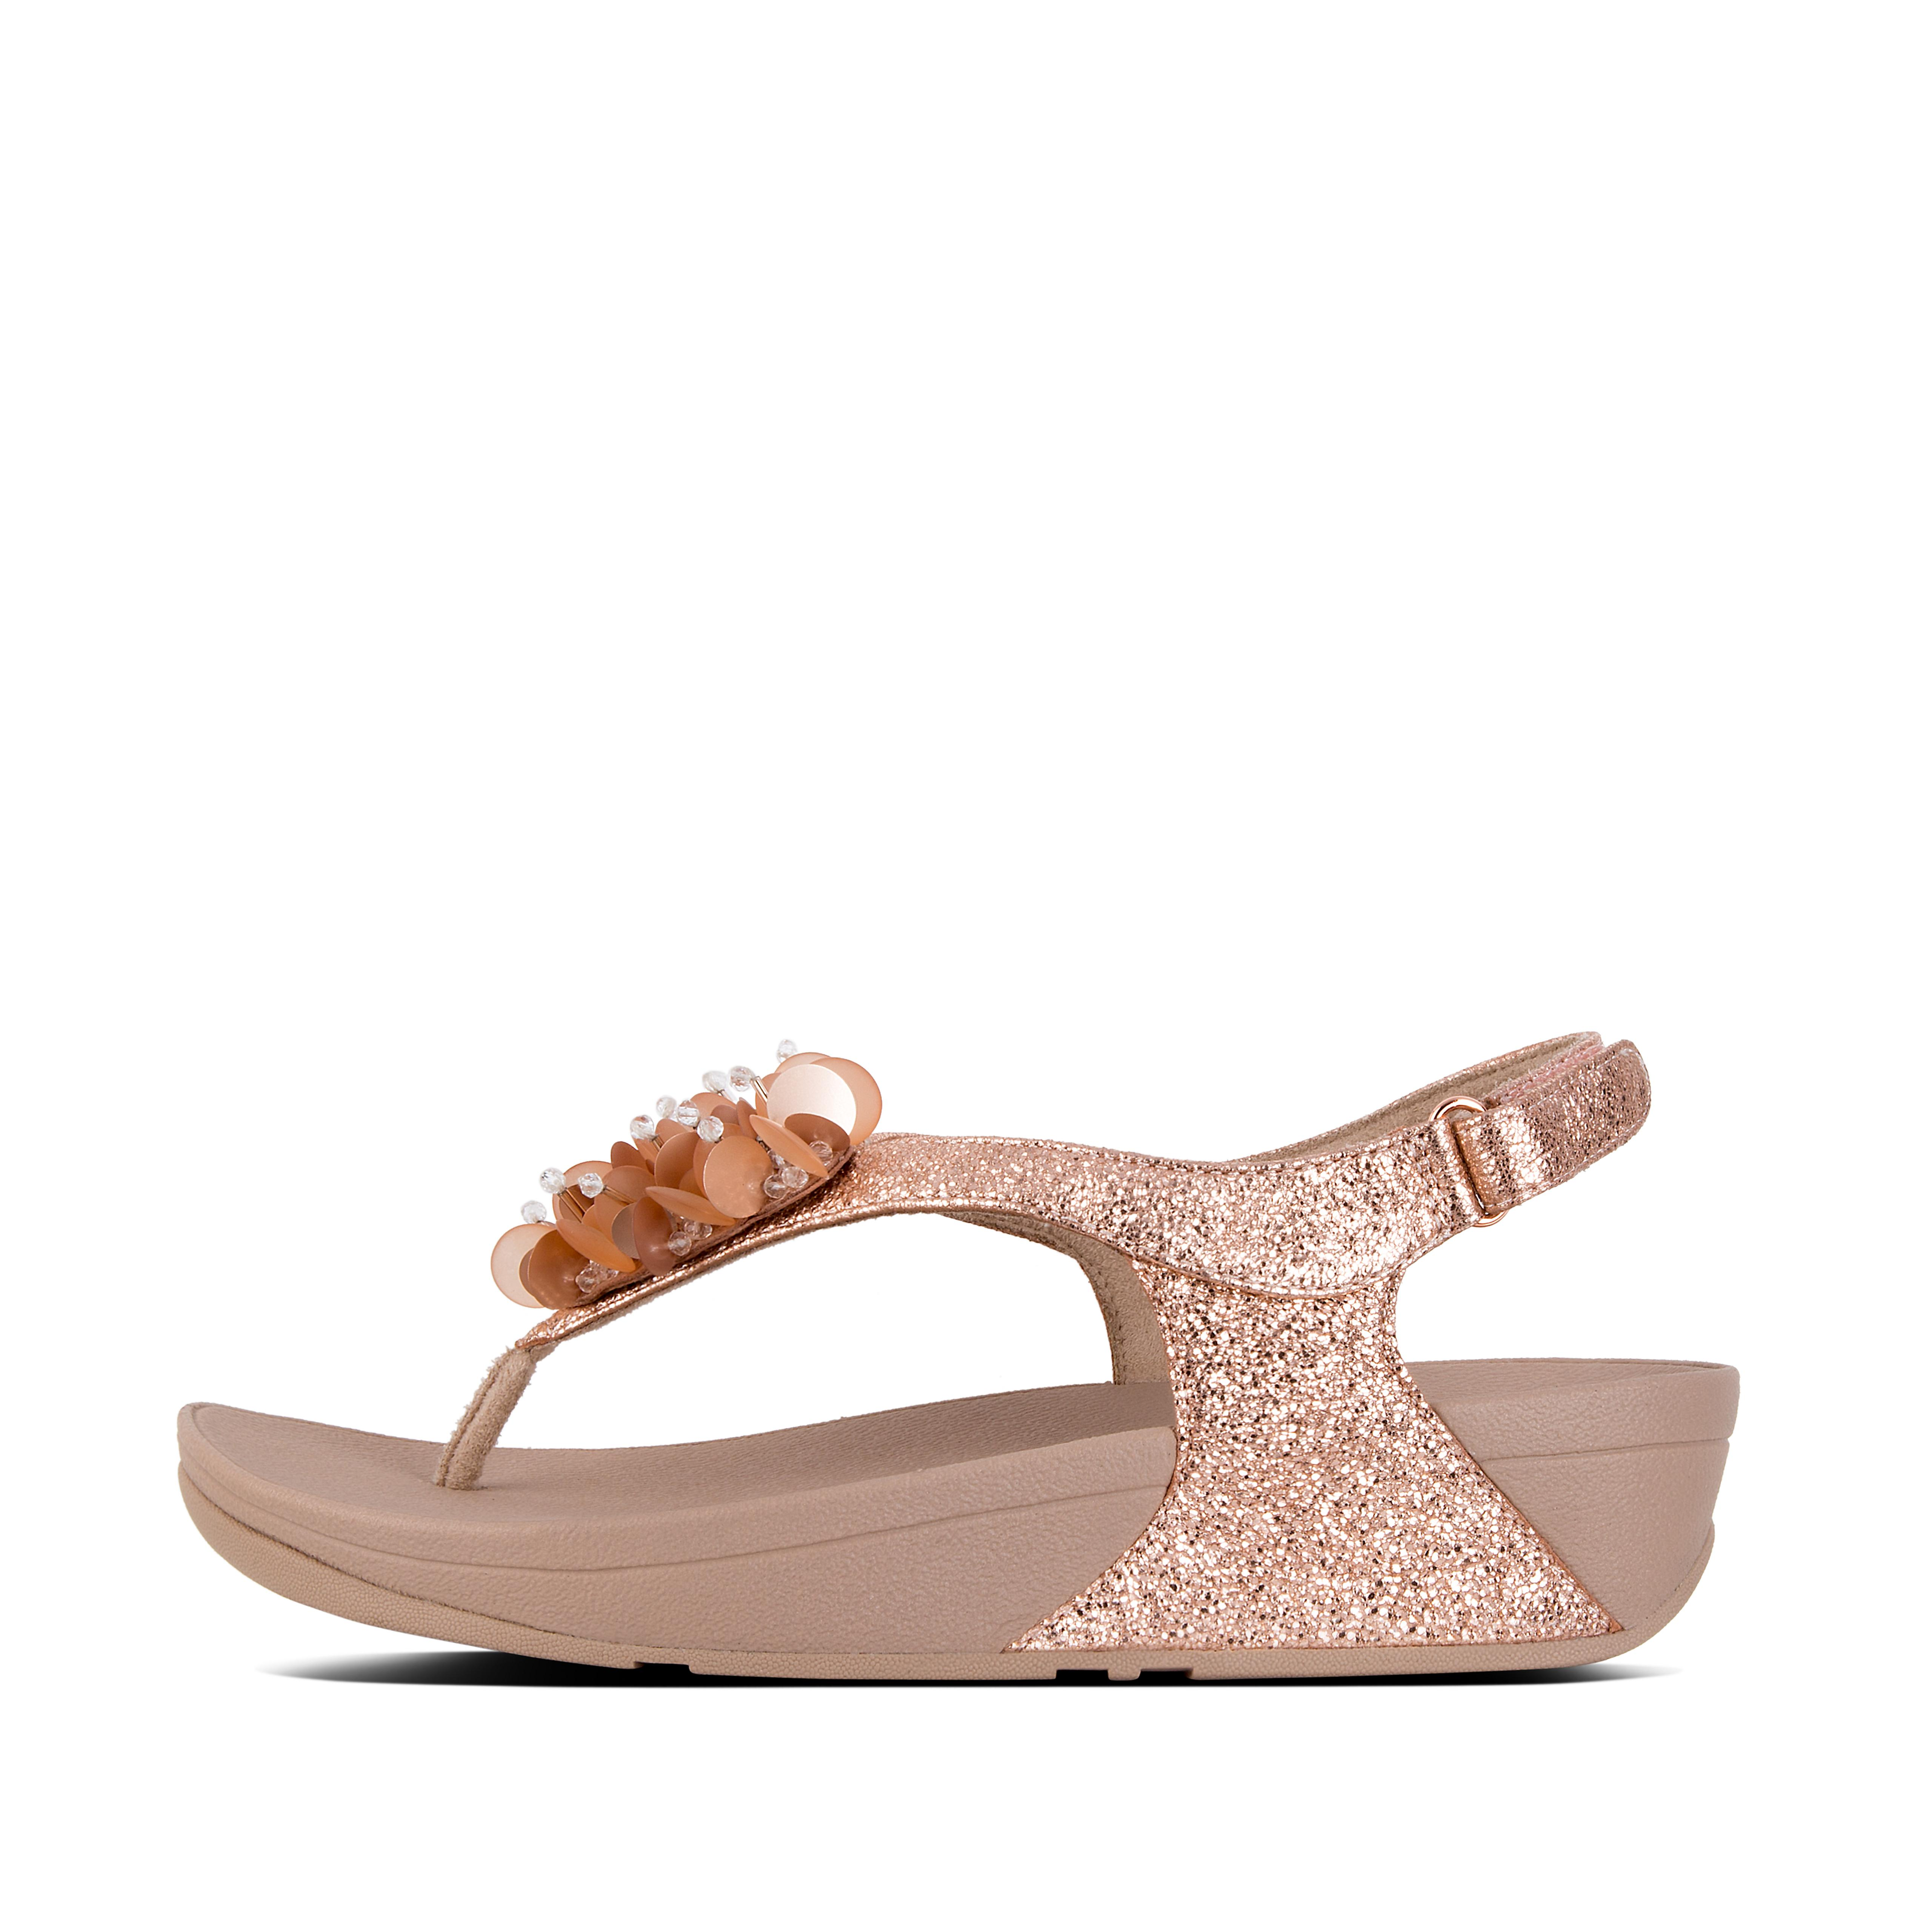 Heaps of tonal beads give these sandals a carnival feel. With comfortable, padded leather uppers and adjustable back-straps - our über-comfortable, pressure-diffusing midsoles means you can dance all night (and day).